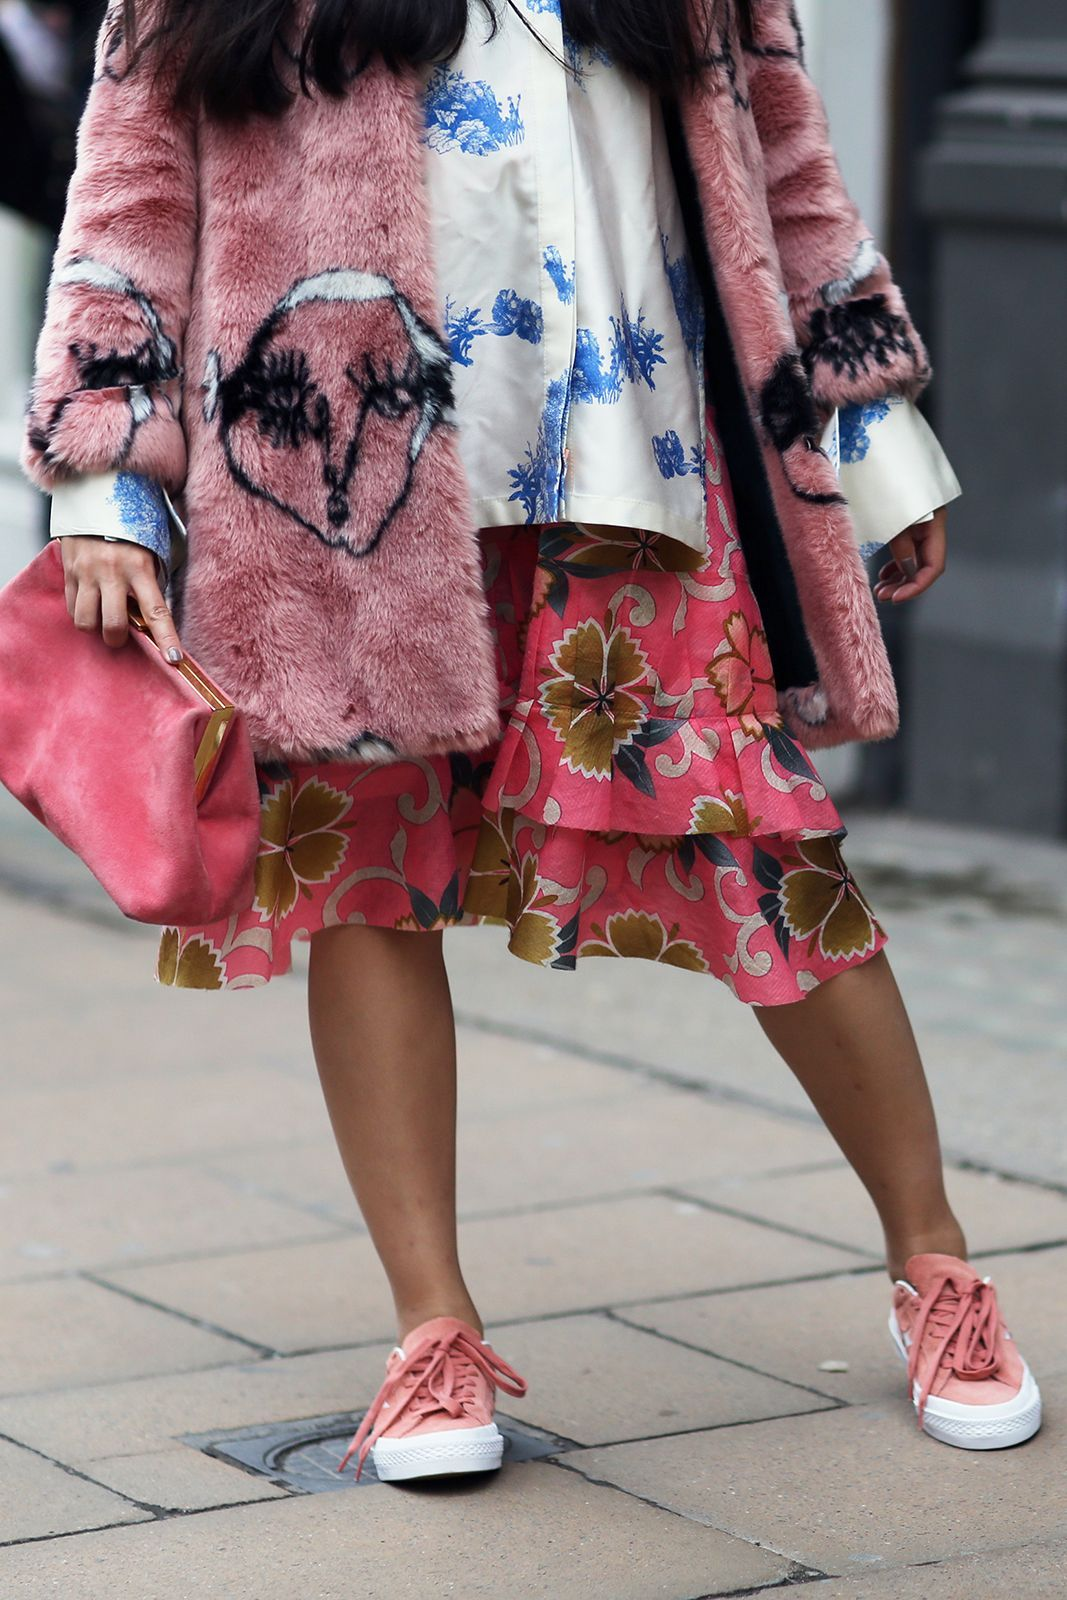 A masterclass in maternity dressing, courtesy of Susie Bubble. Never have so many colors and patterns looked so good together.Shrimps coat. #refinery29 http://www.refinery29.com/2016/09/123831/lfw-spring-2017-best-street-style-outfits#slide-39